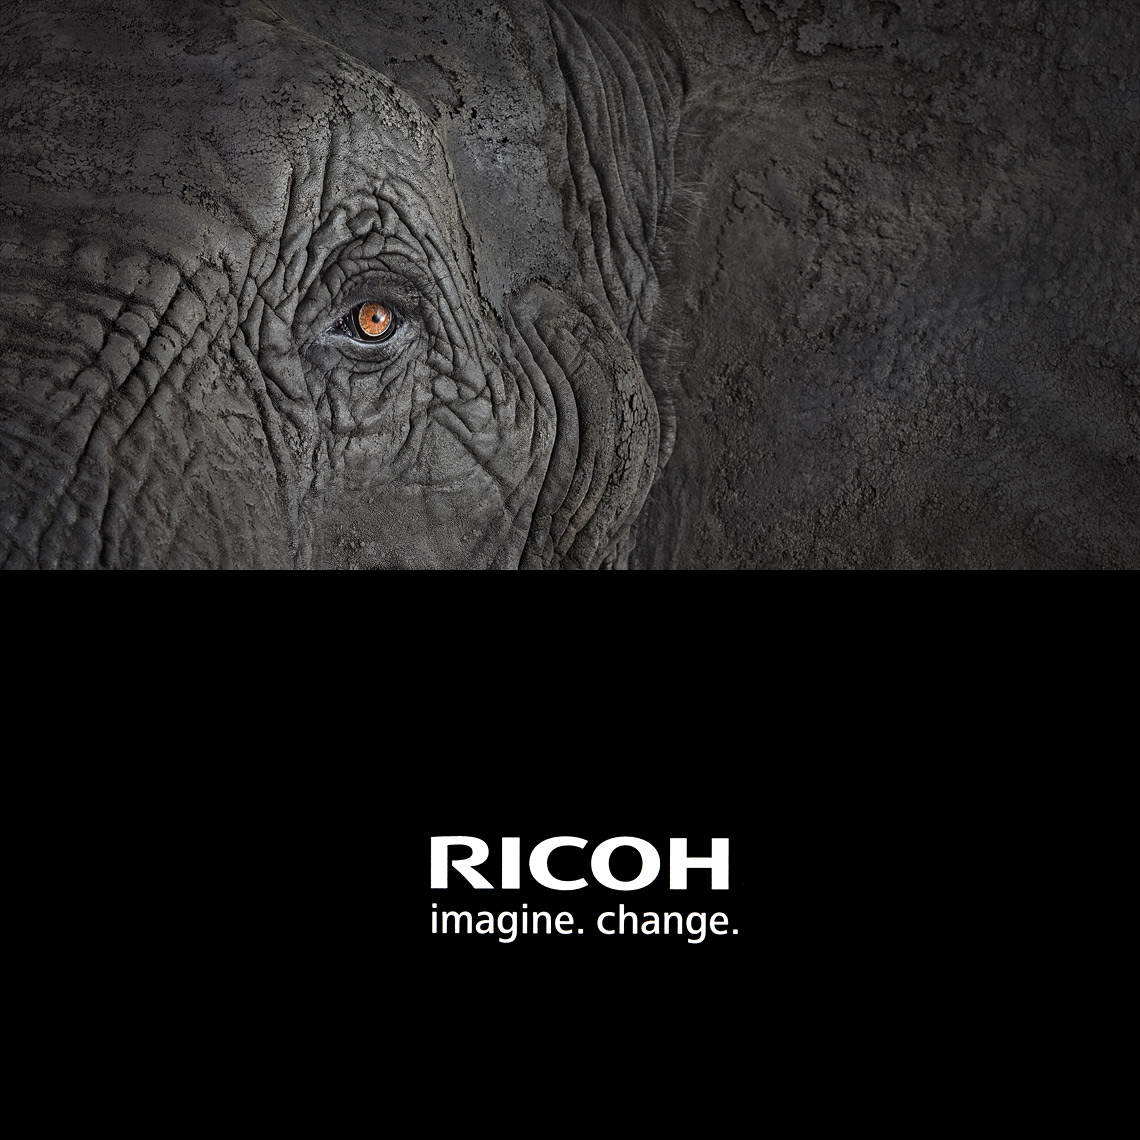 Ricoh advertisement by animal photographer Brad Wilson